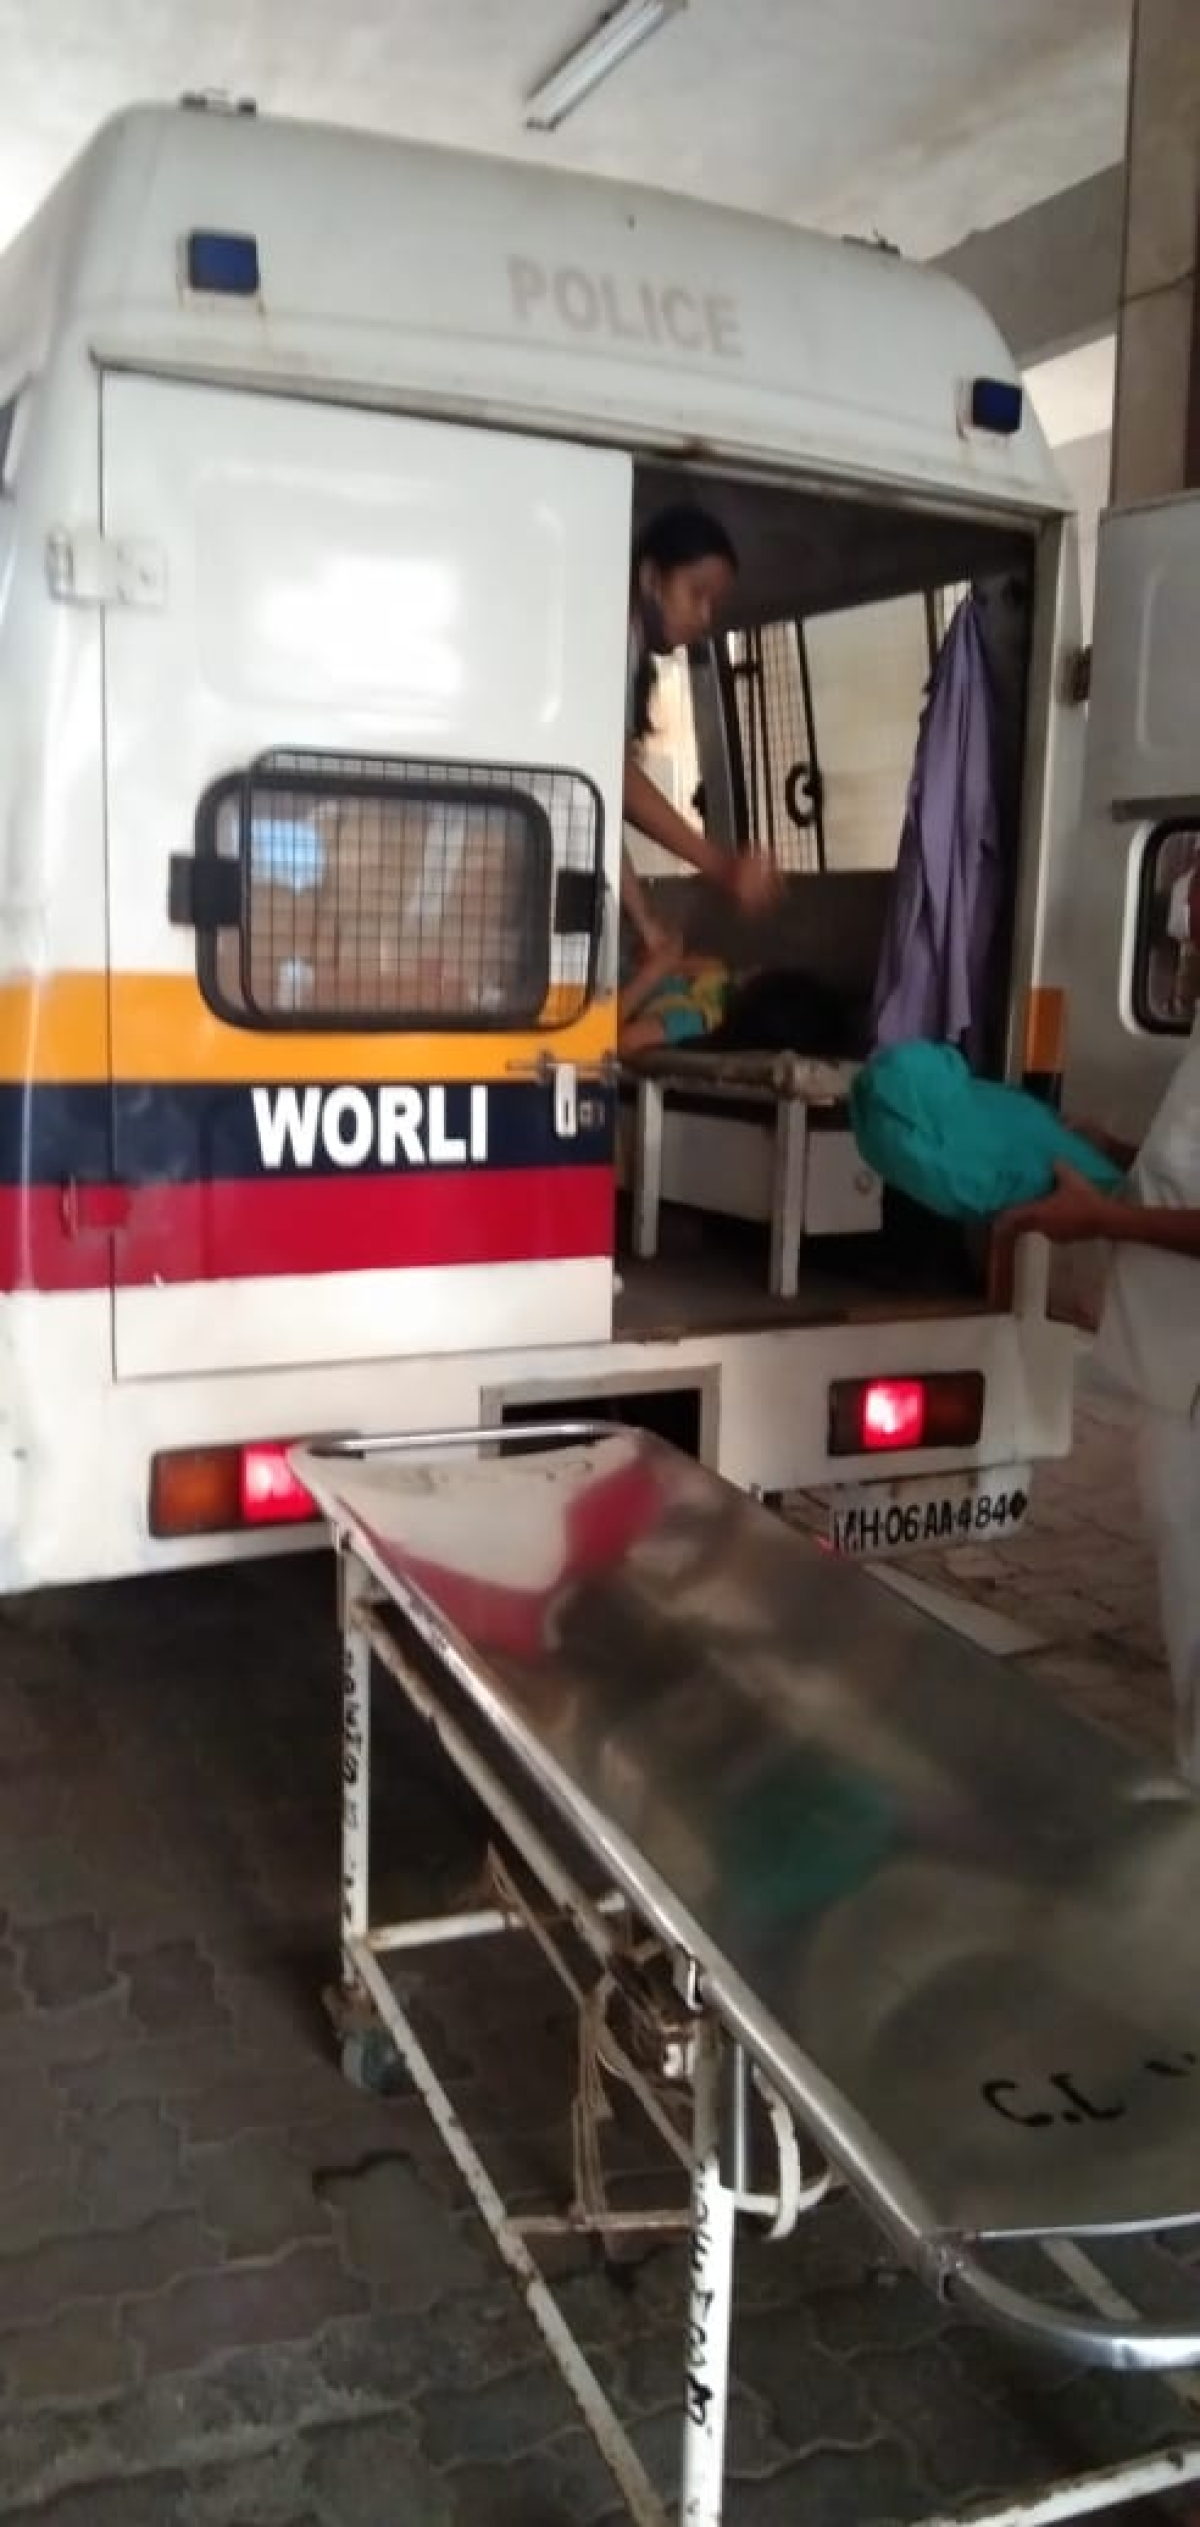 Woman safely delivers baby girl inside Mumbai police van